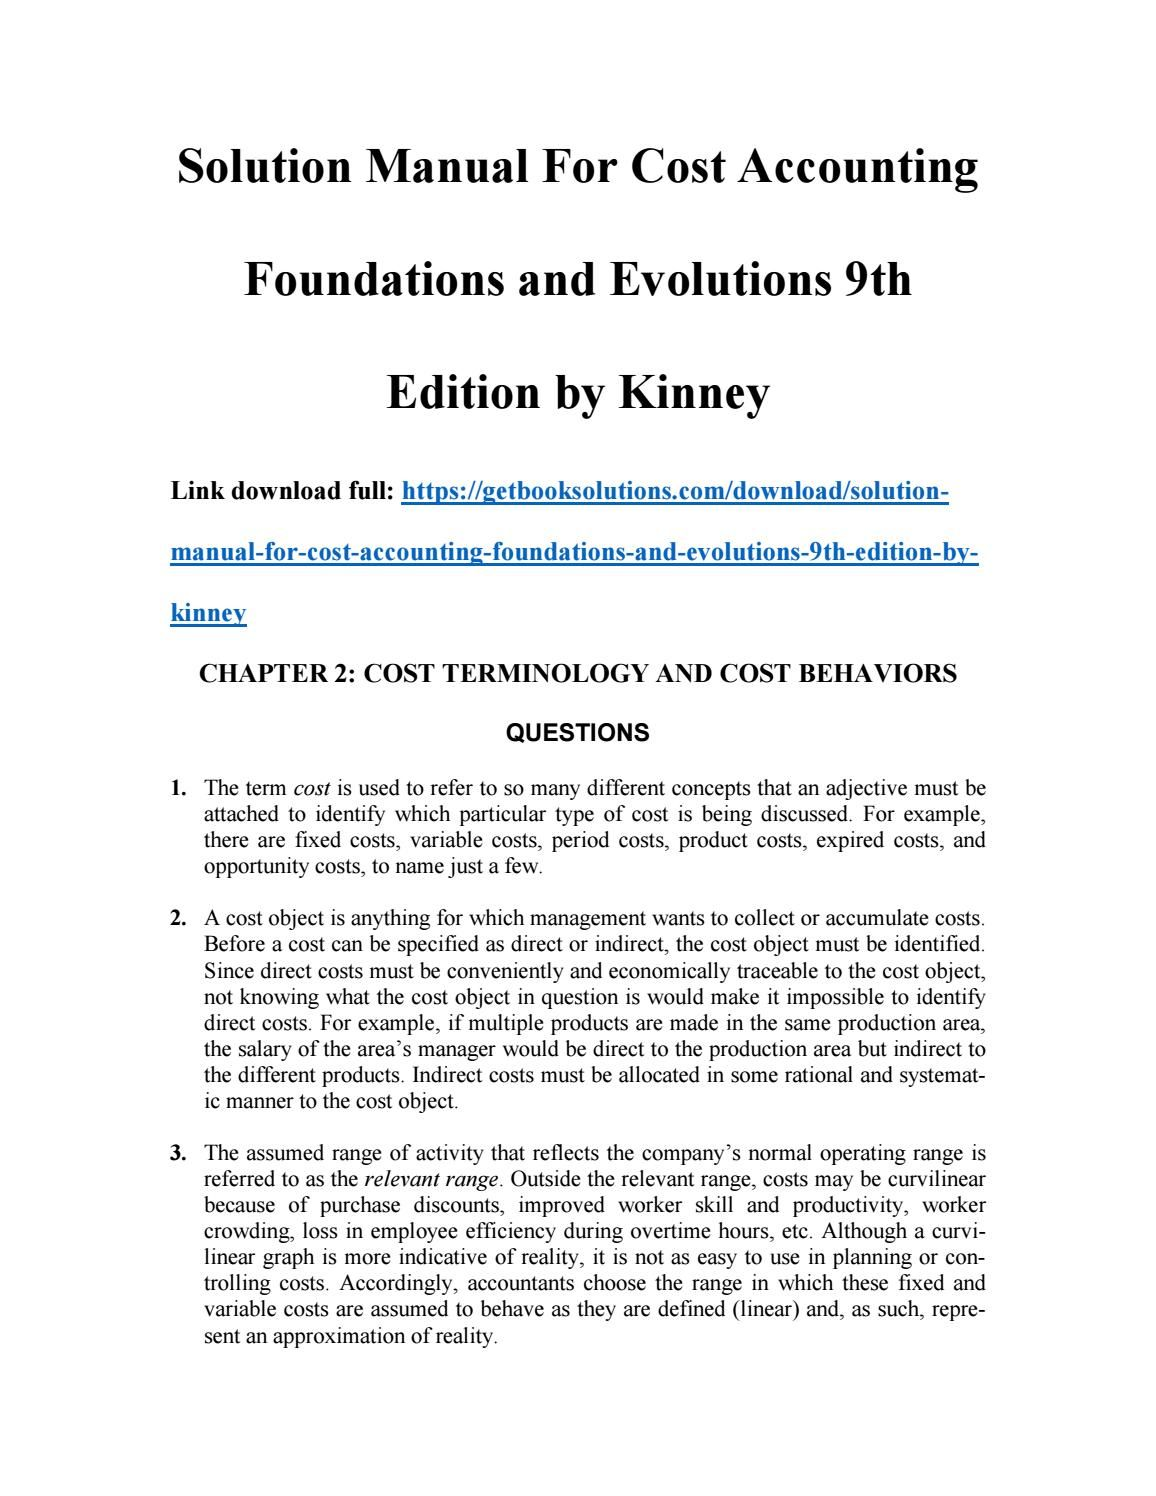 Solution manual for cost account ing foundations and evolutions 9th